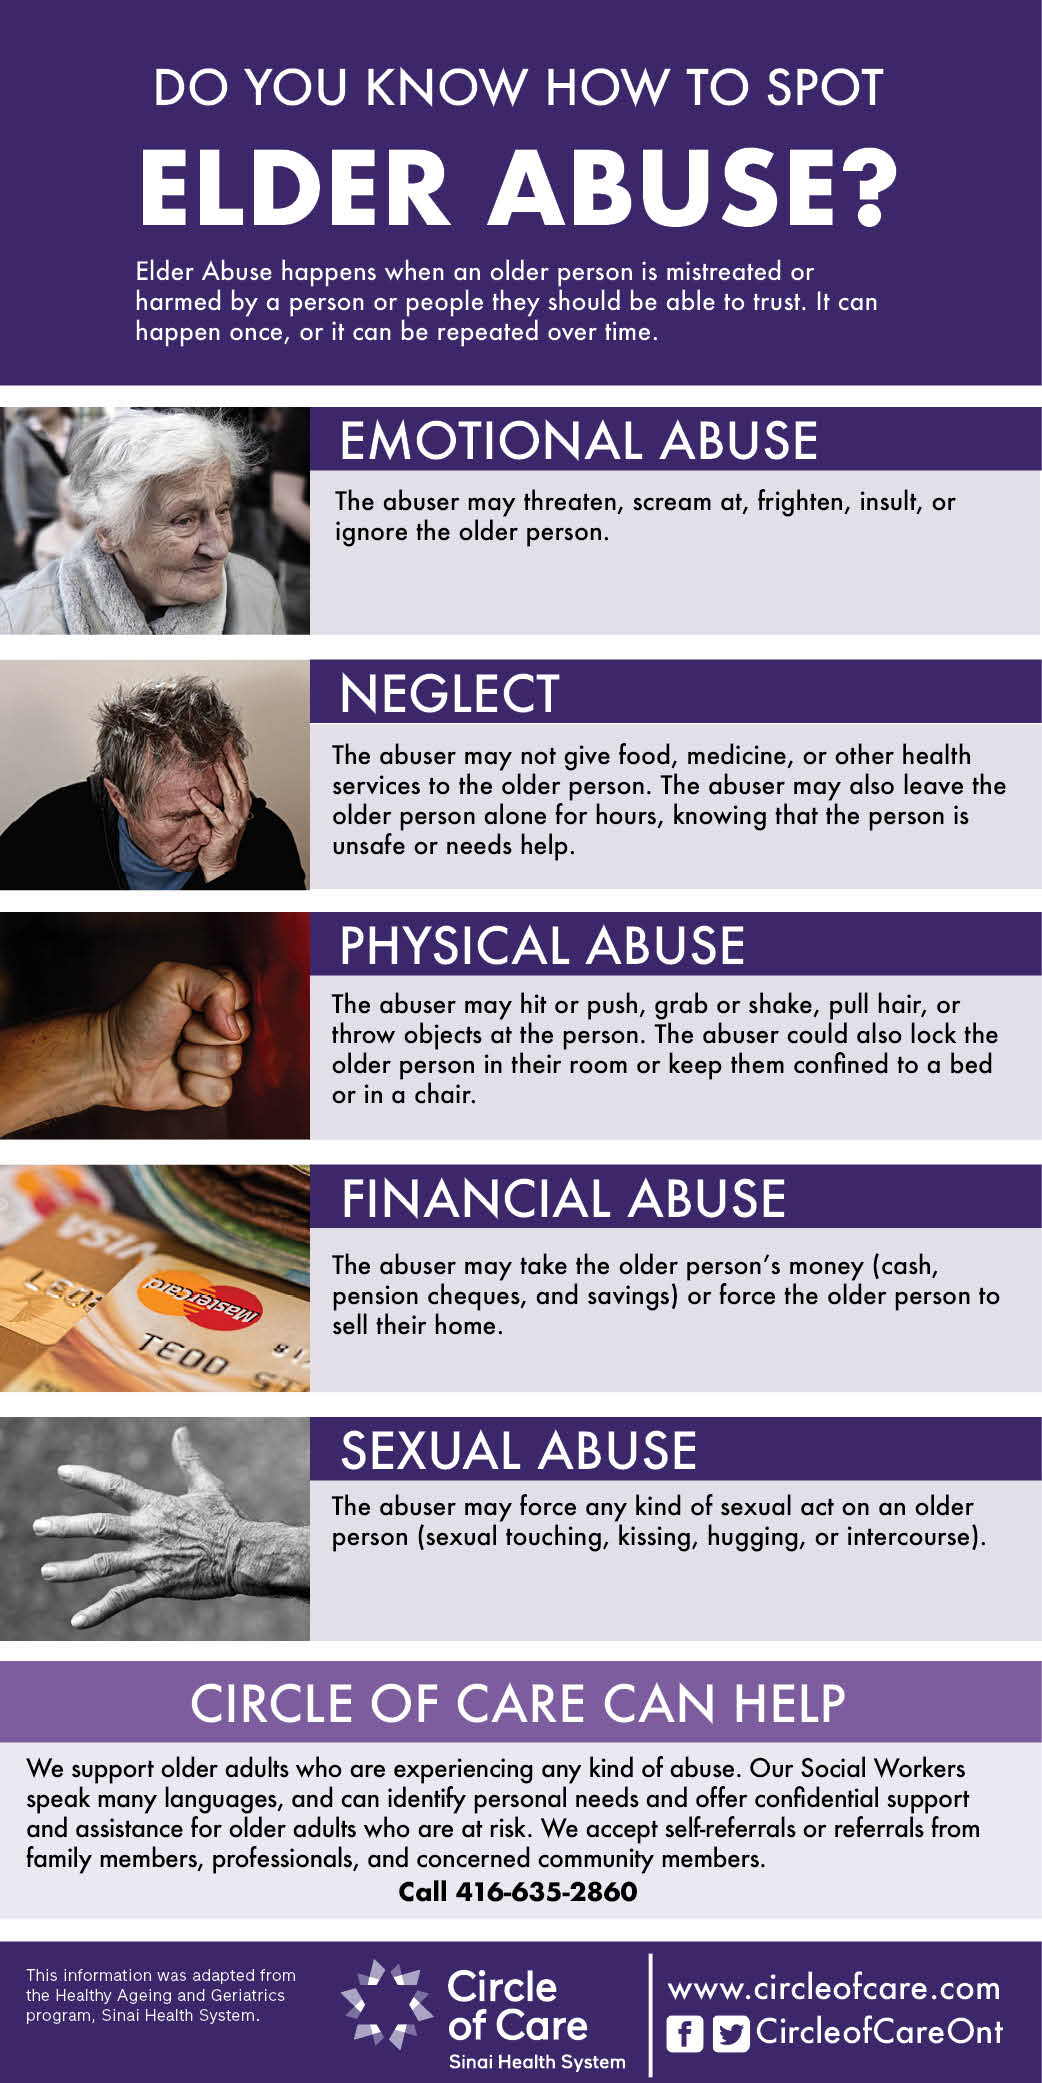 Infographic that asks Do you know how to spot elder abuse?